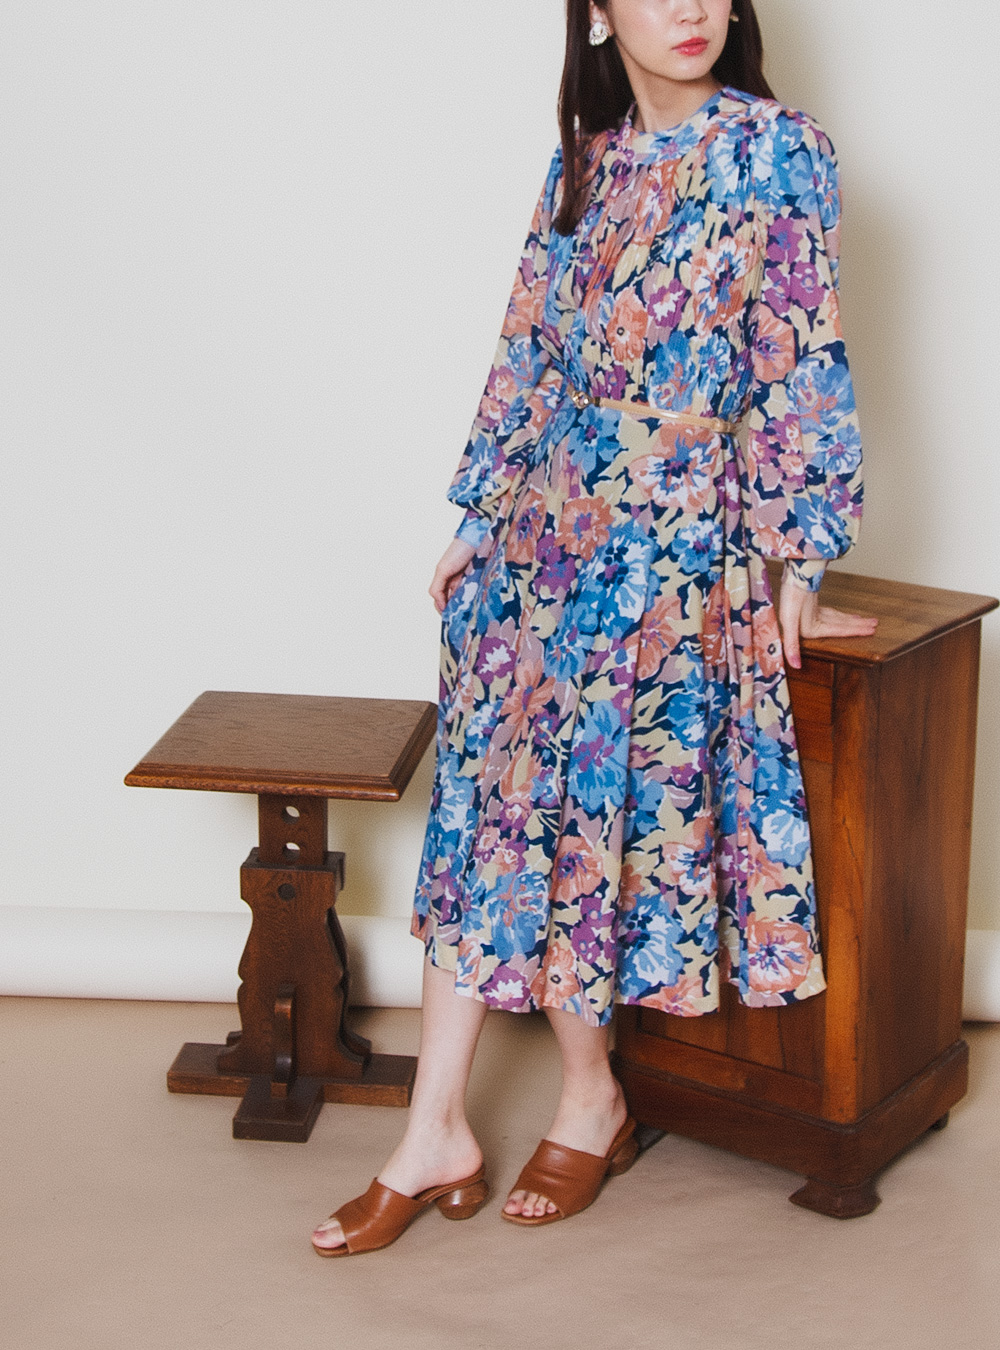 Colorful Flower Print Design Sheer Dress